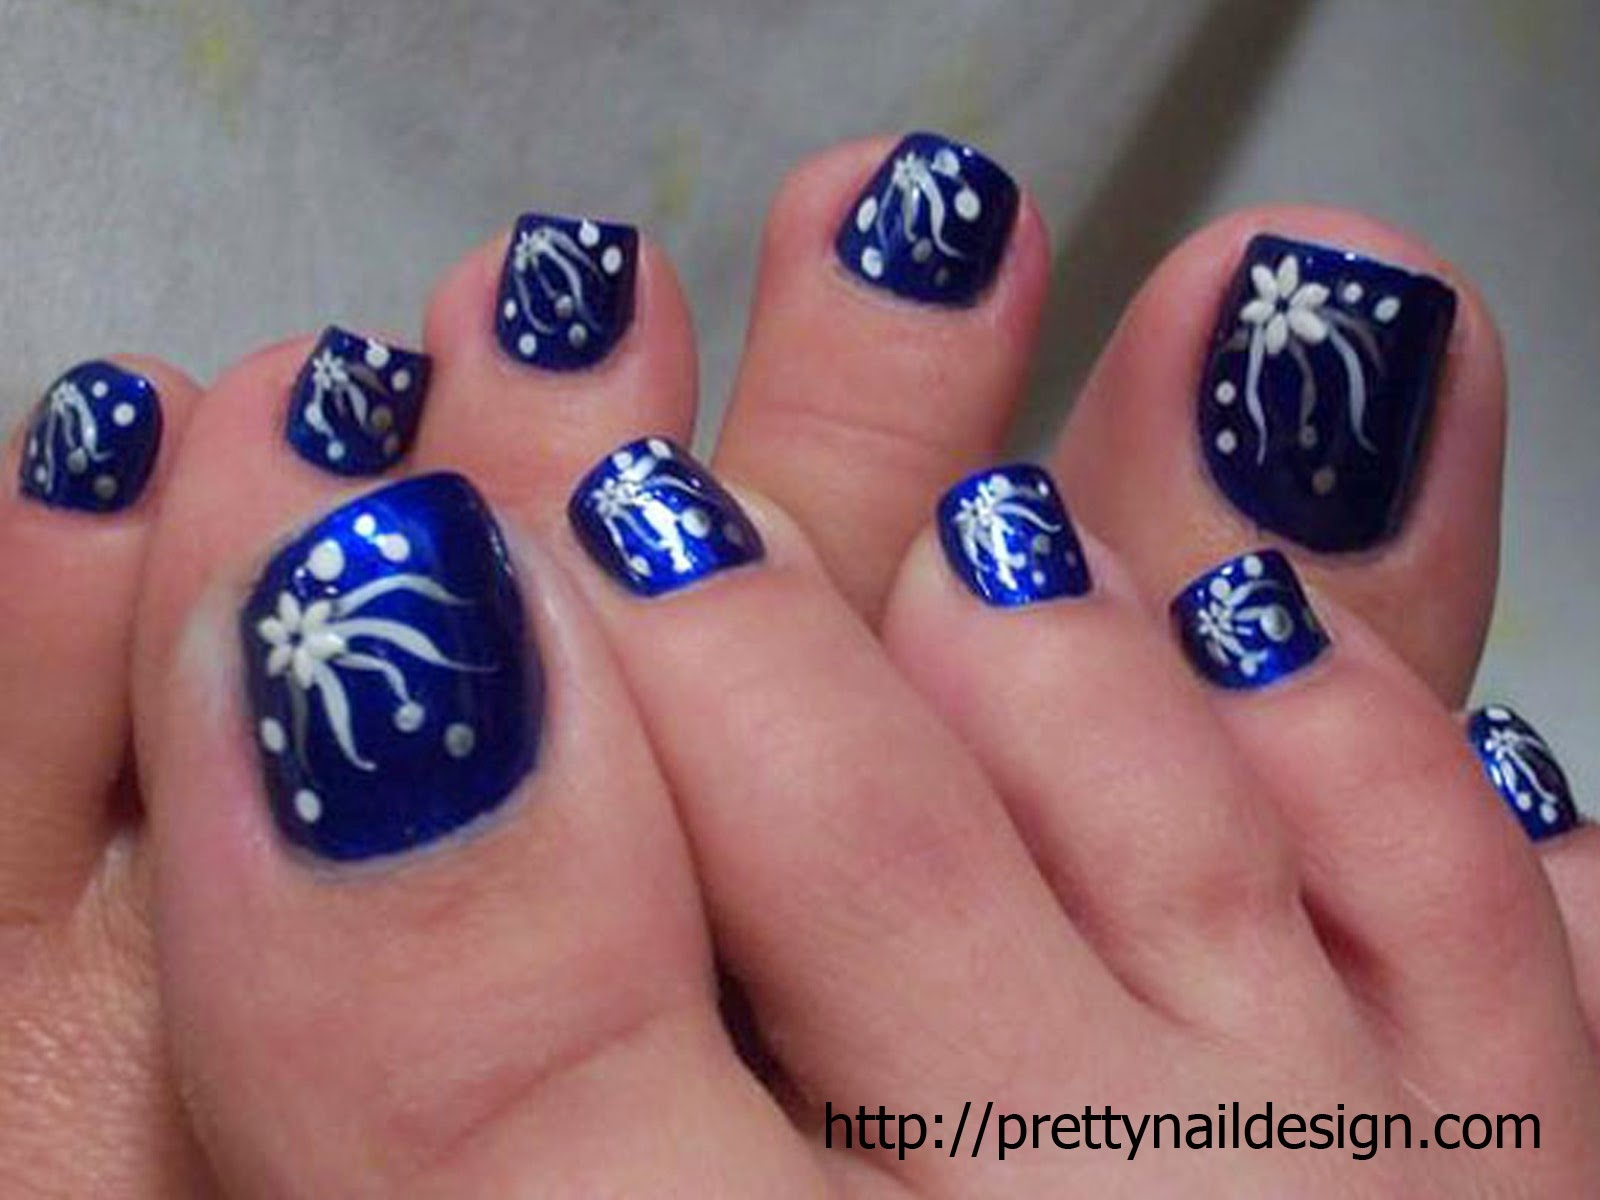 Nail Art Designs For Toes Step